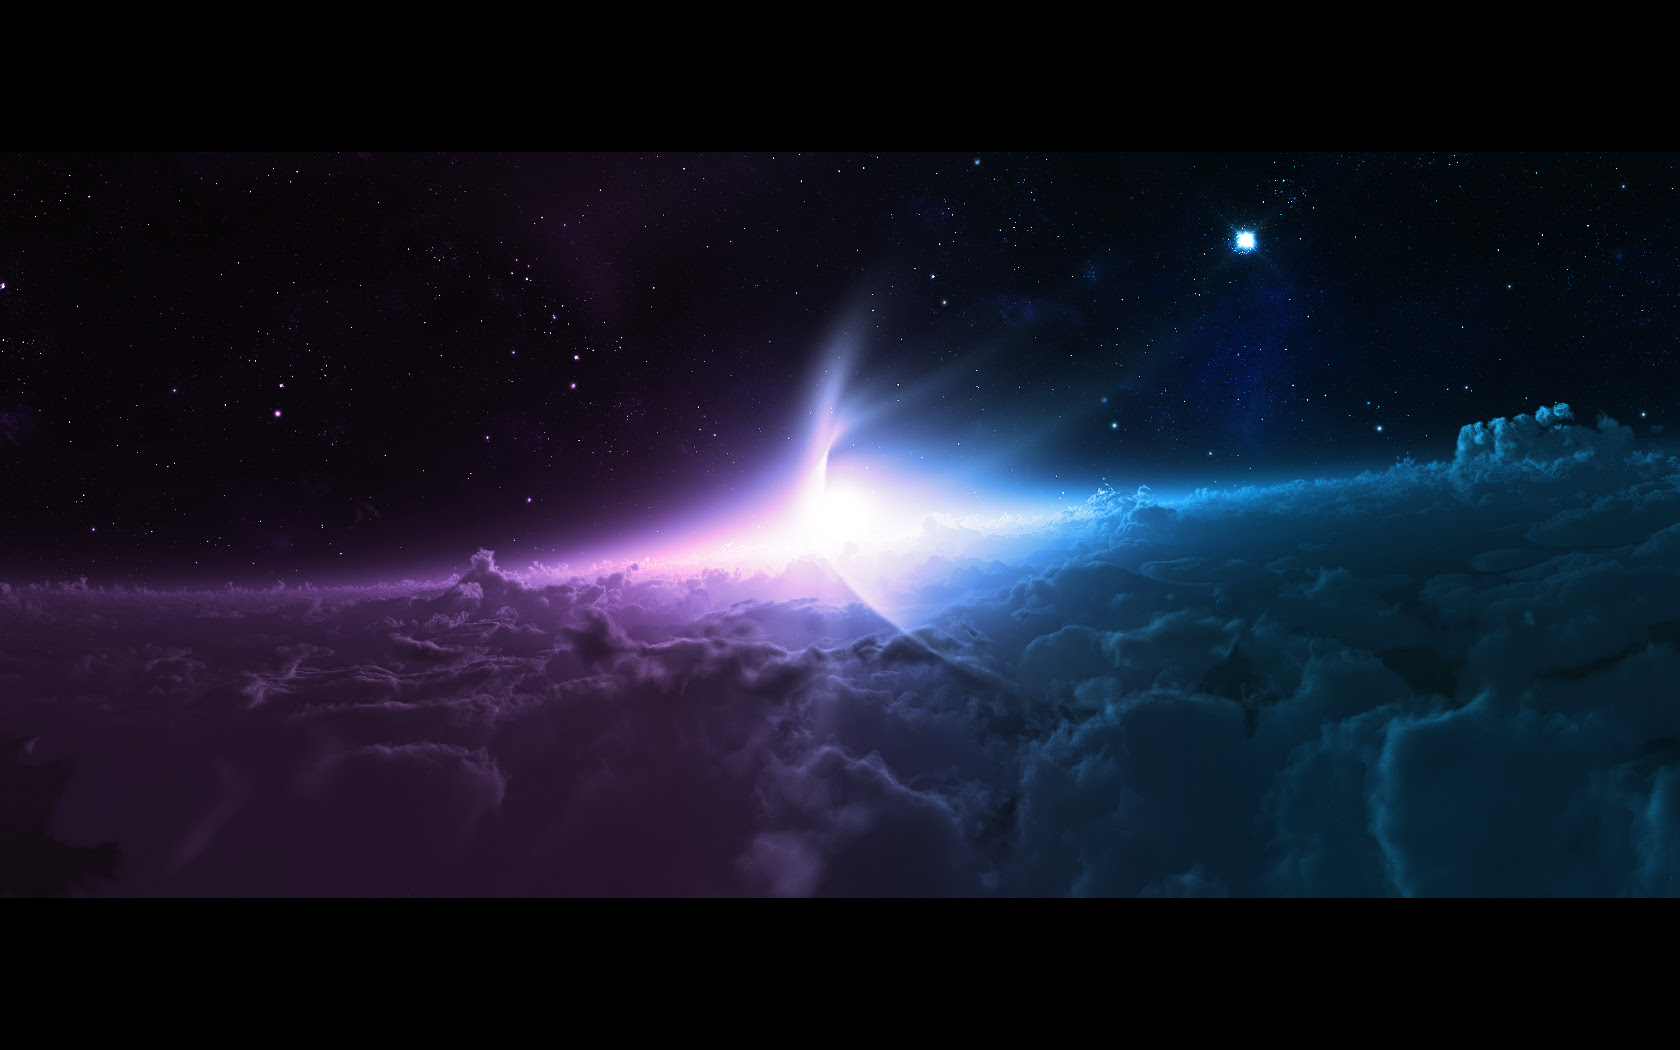 Fantasy Space Wallpapers